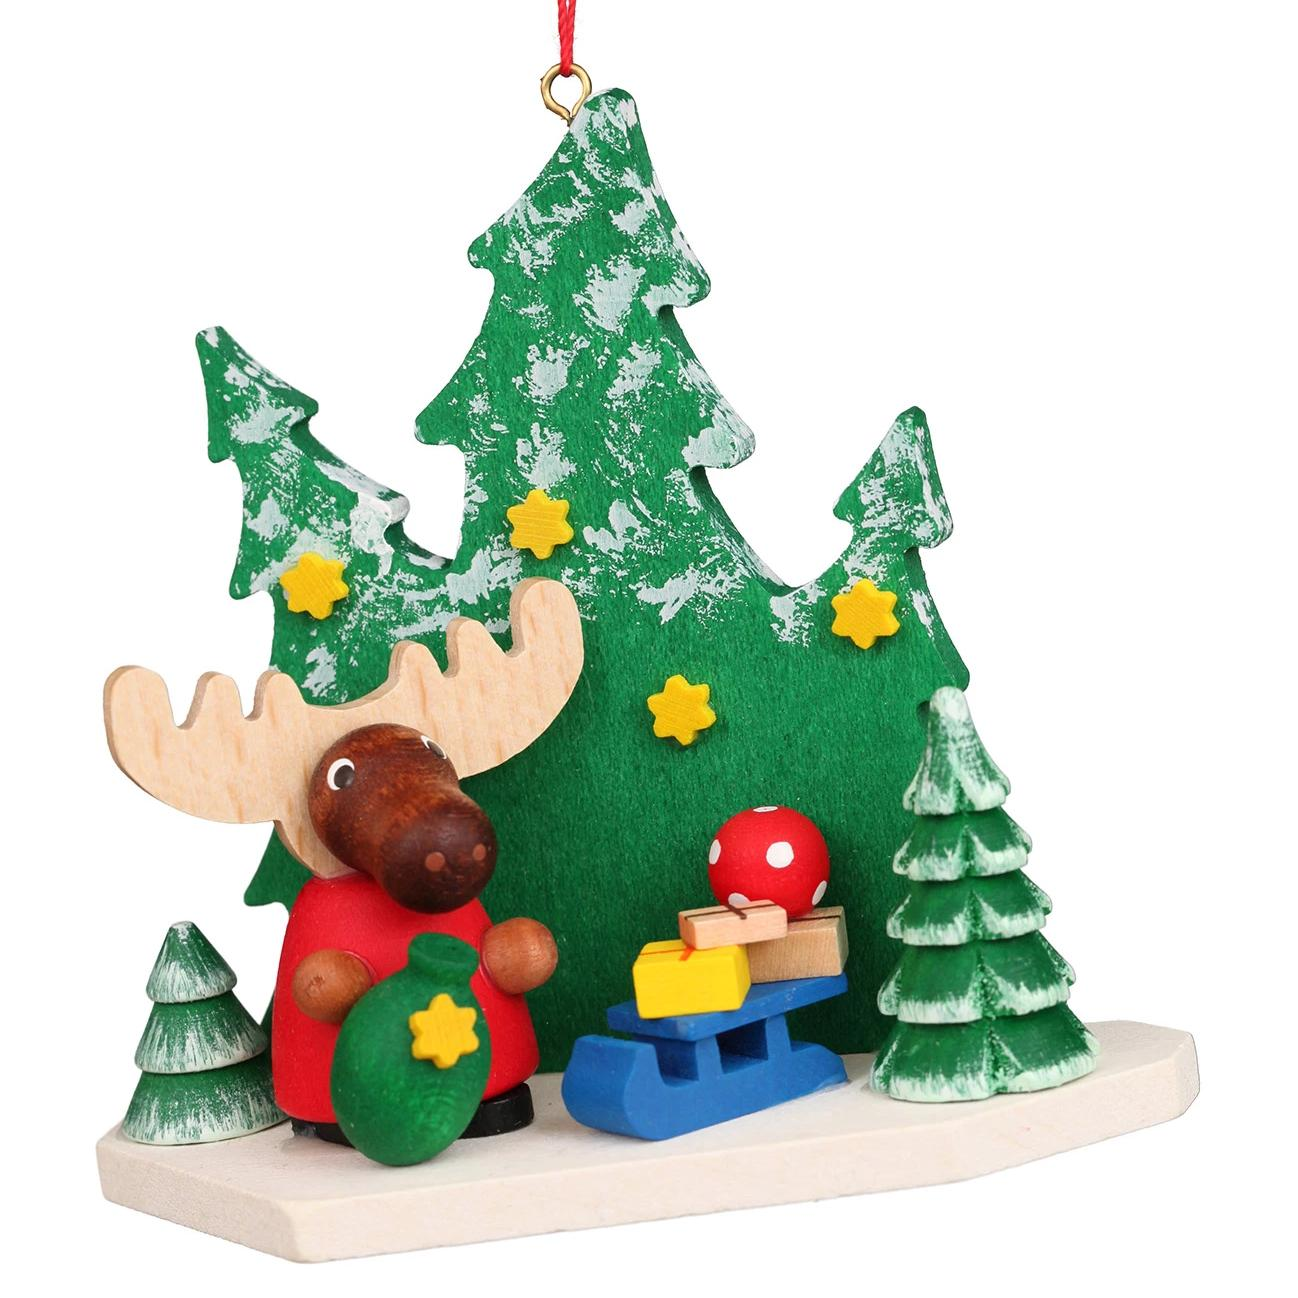 Moose in Forest - Christmas tree decoration